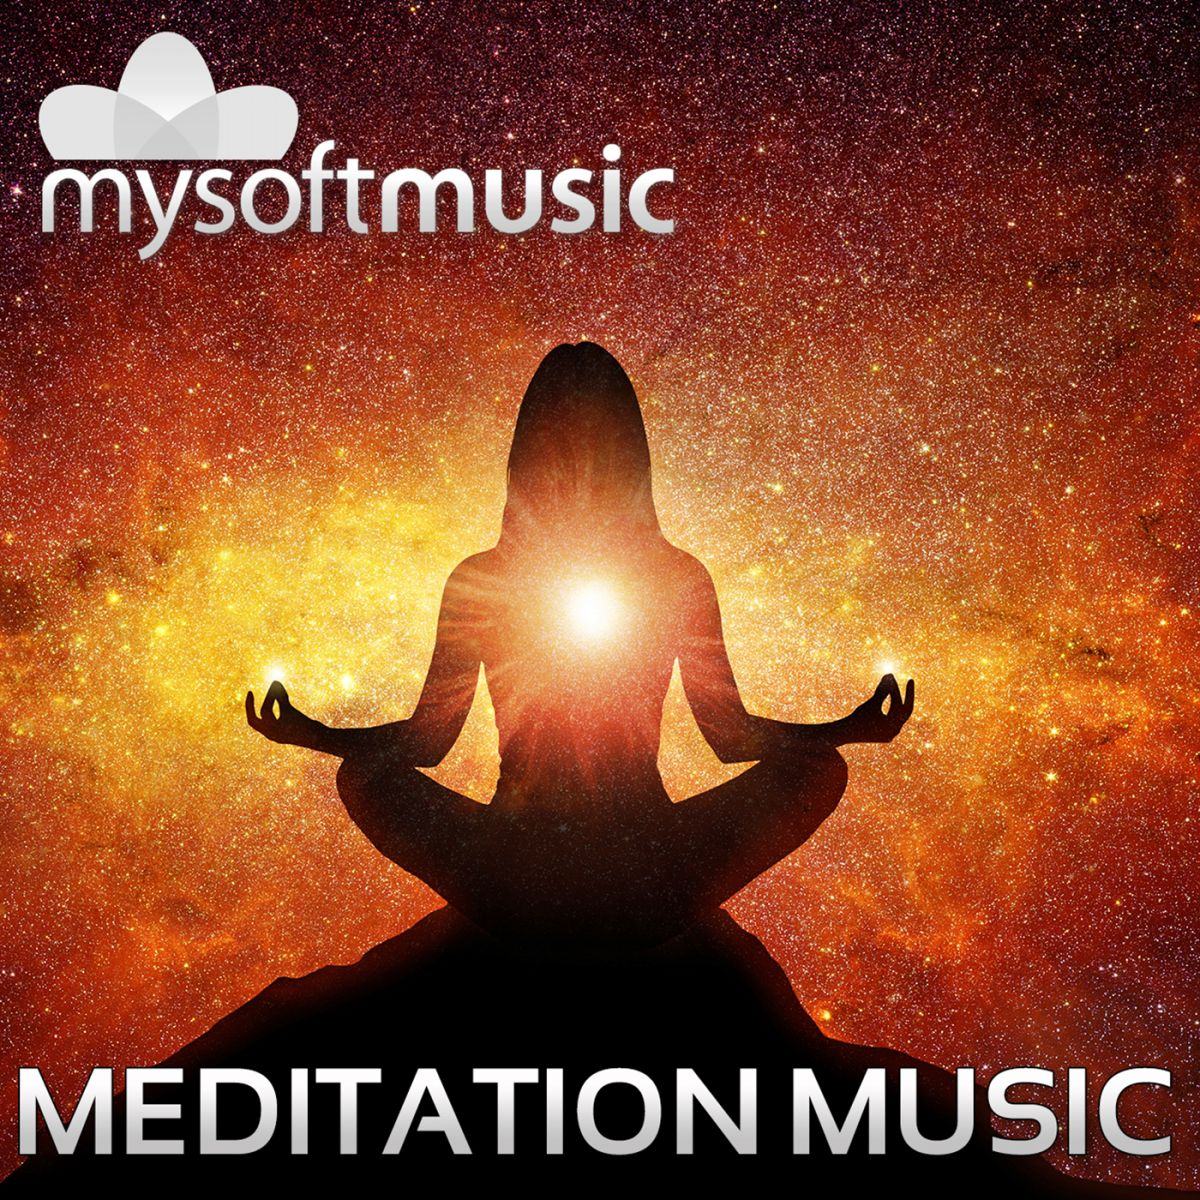 Meditation music download mp3 | mysoftmusic